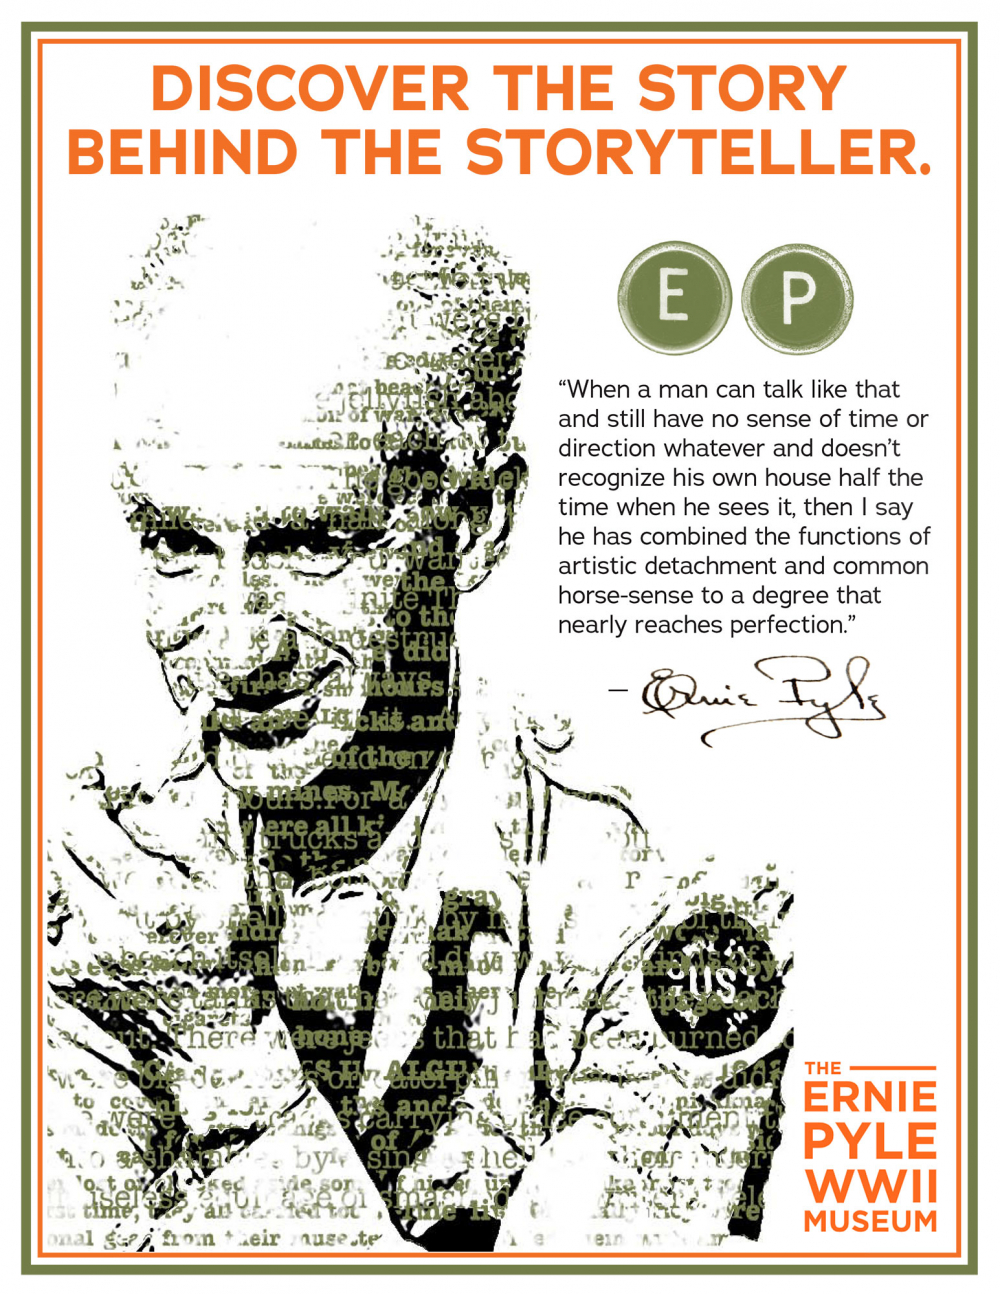 "An image of Ernie Pyle with this text: Discover the story behind the storyteller. ""When a man can talk like that and still have no sense of time or direction whatever and doesn't recognize his own house half the time when he sees it, then I say he has combined the functions of artistic detachment and common horse-sense to a degree that nearly reaches perfect."" The Ernie Pyle WWII Museum."